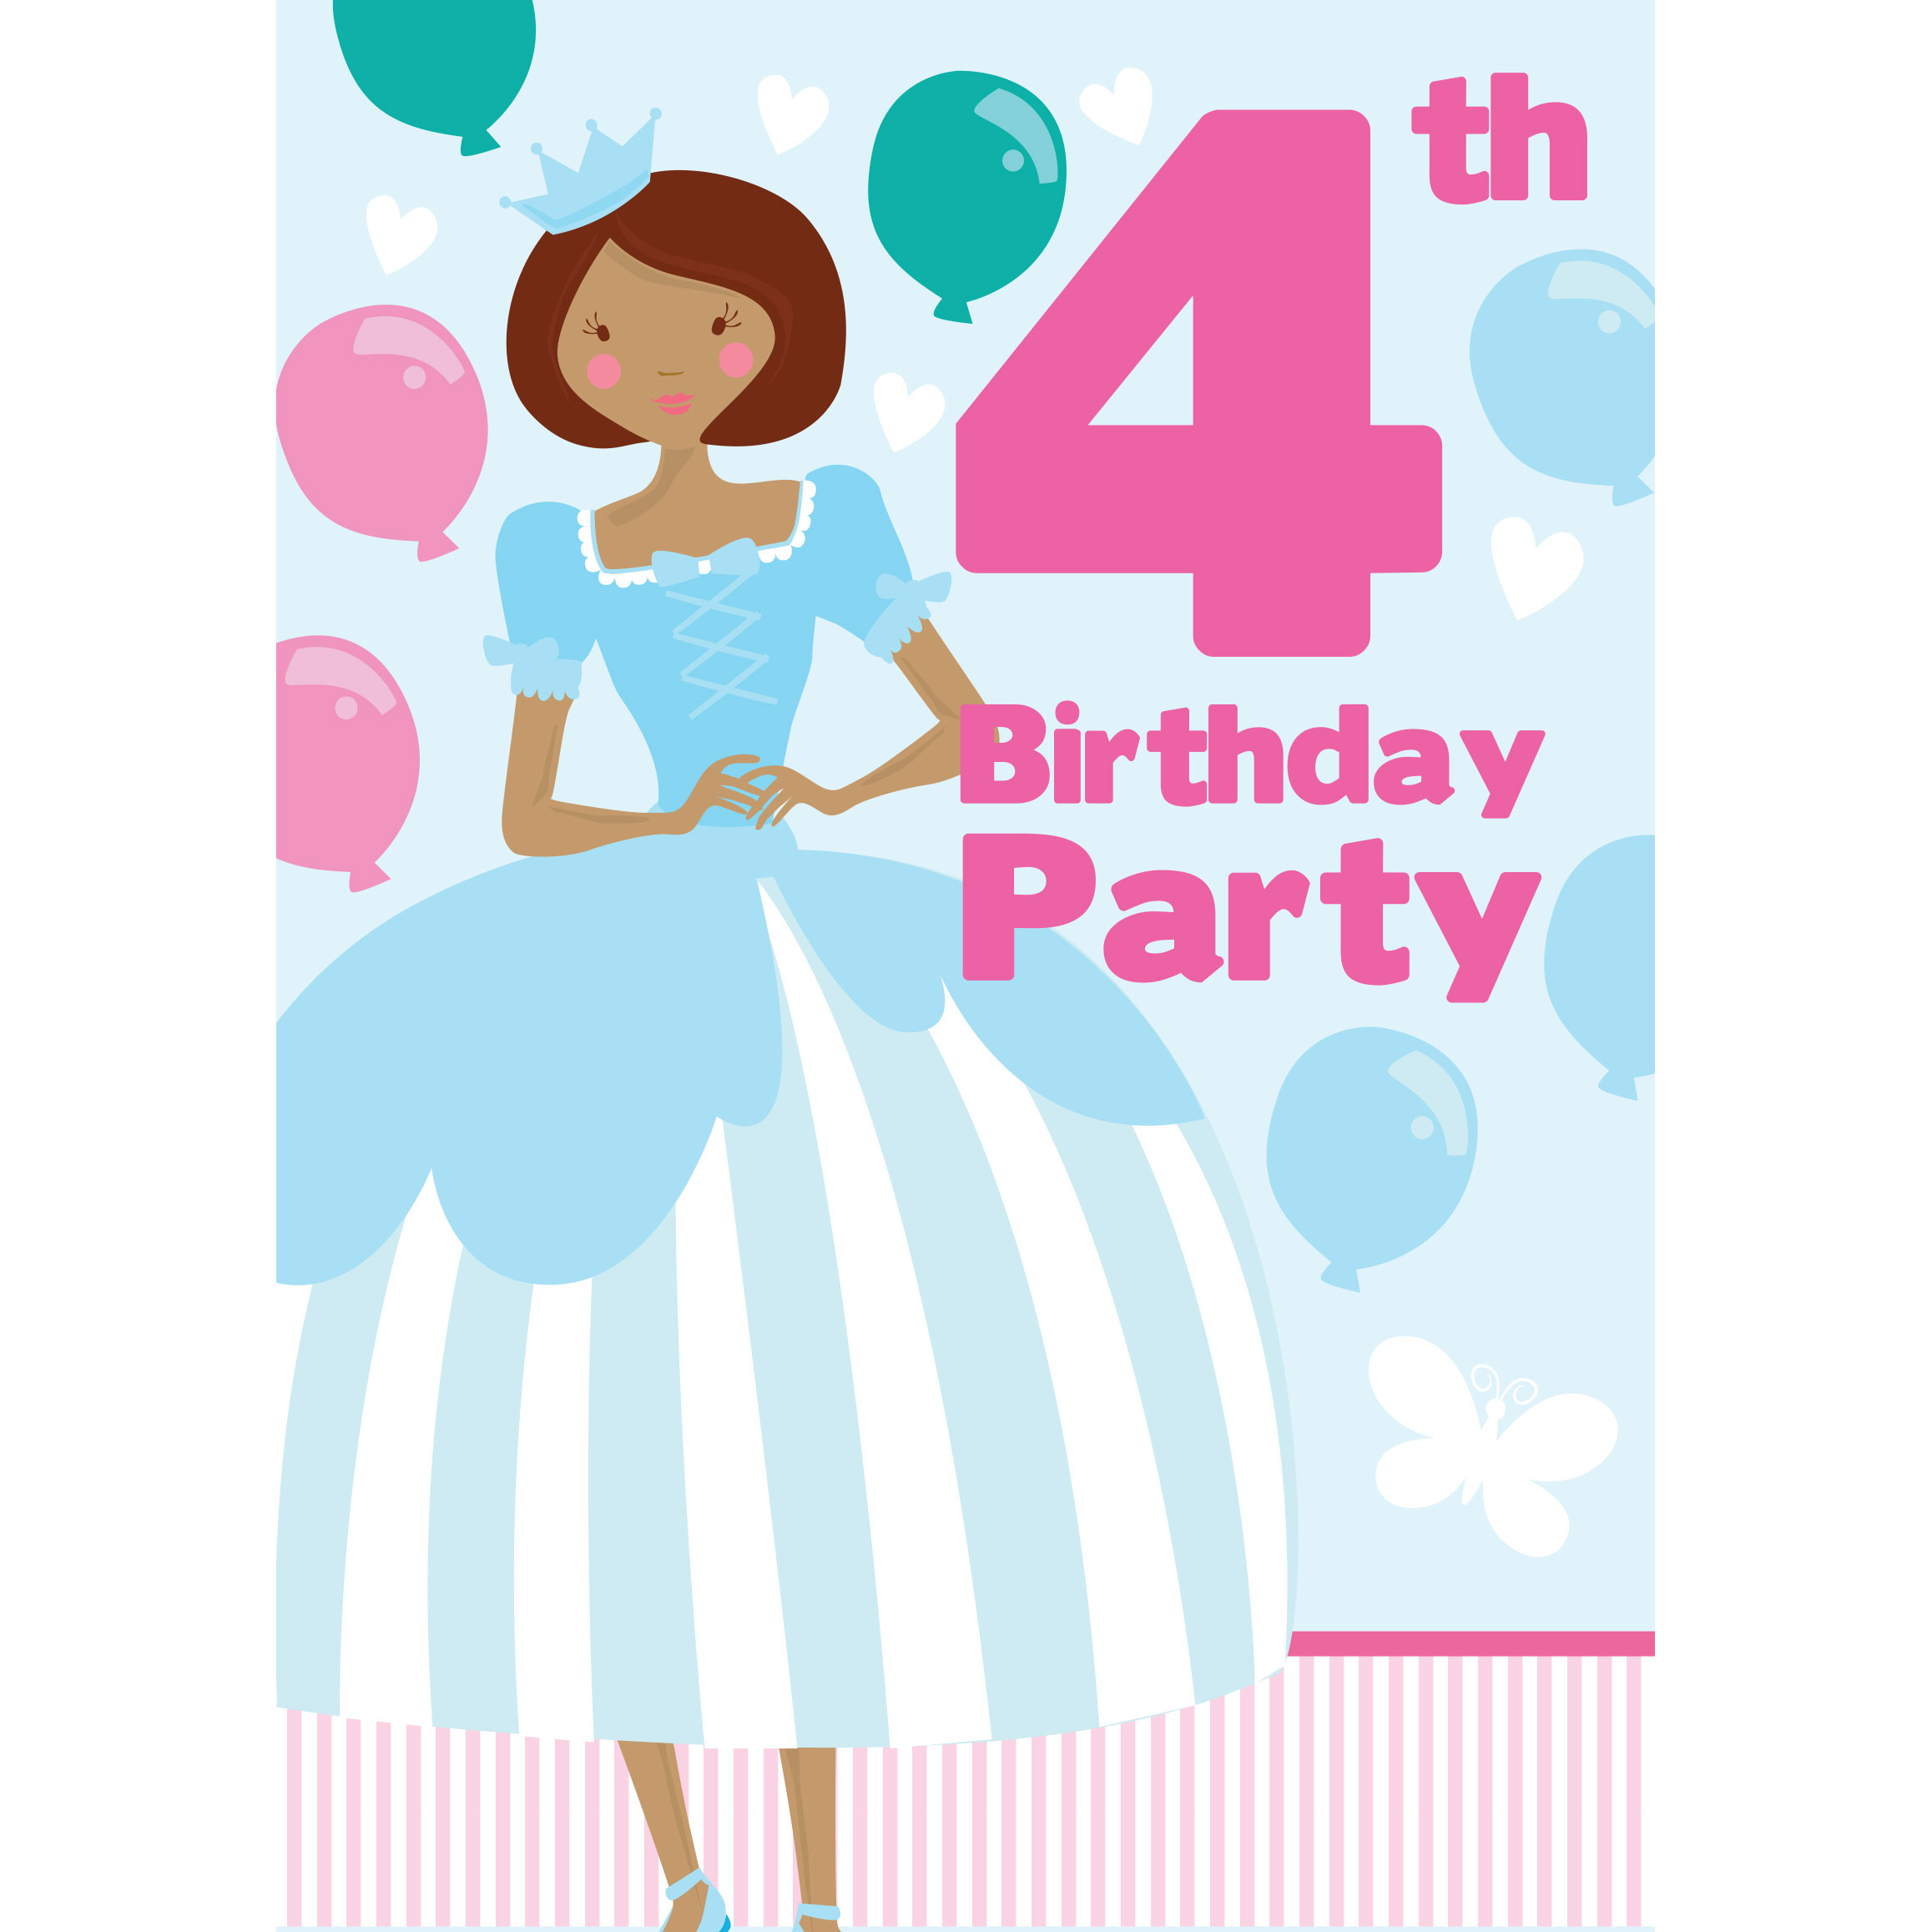 Big happy birthday badges party products party delights - 4th Birthday Party Invites Medium